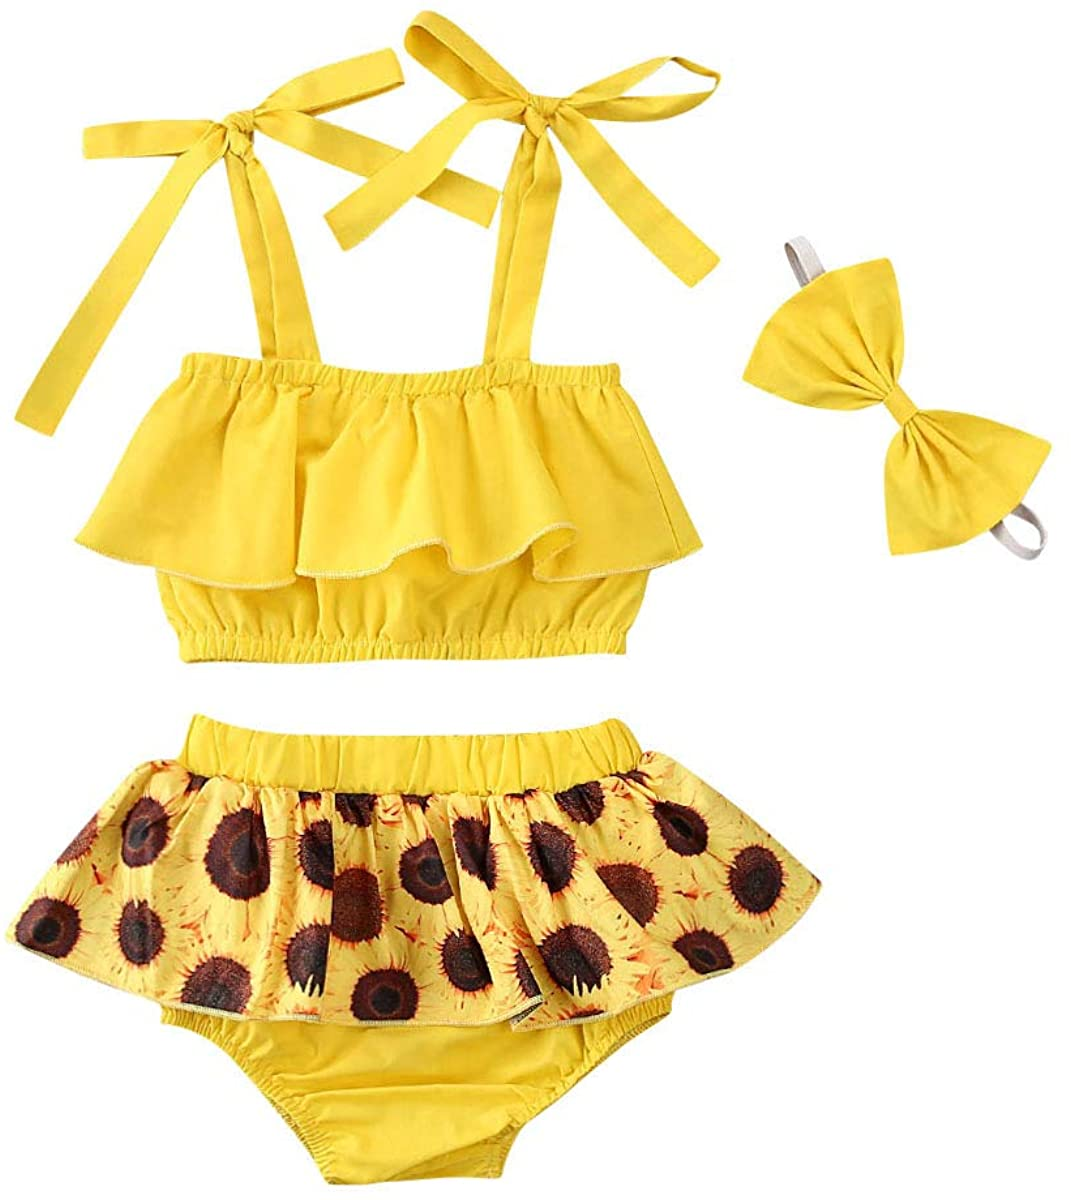 MA&BABY Baby Girl Clothes Sunflower Ruffle Strap Tops Shorts Set with Headband 3Pcs Summer Outfit Set